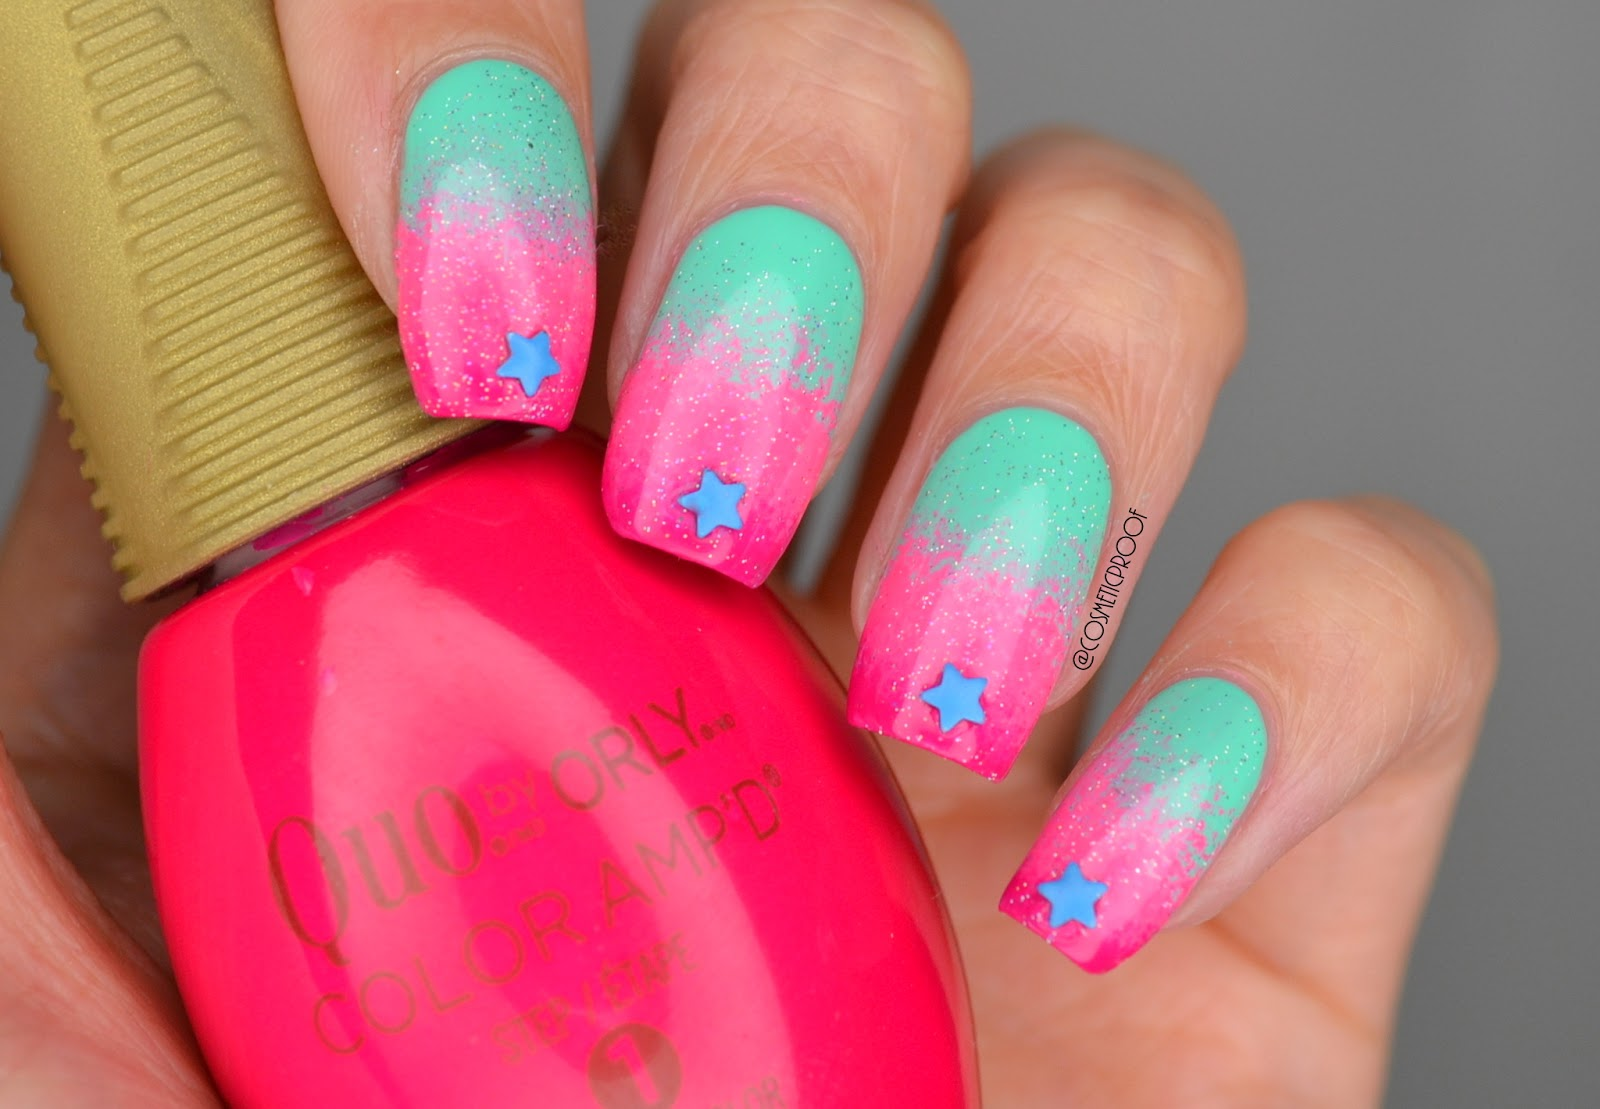 NAILS | A Neon Gradient Means "|1600|1109|?|da9d44fe9683ace89a278c9b3e6c4abc|False|UNLIKELY|0.32171711325645447